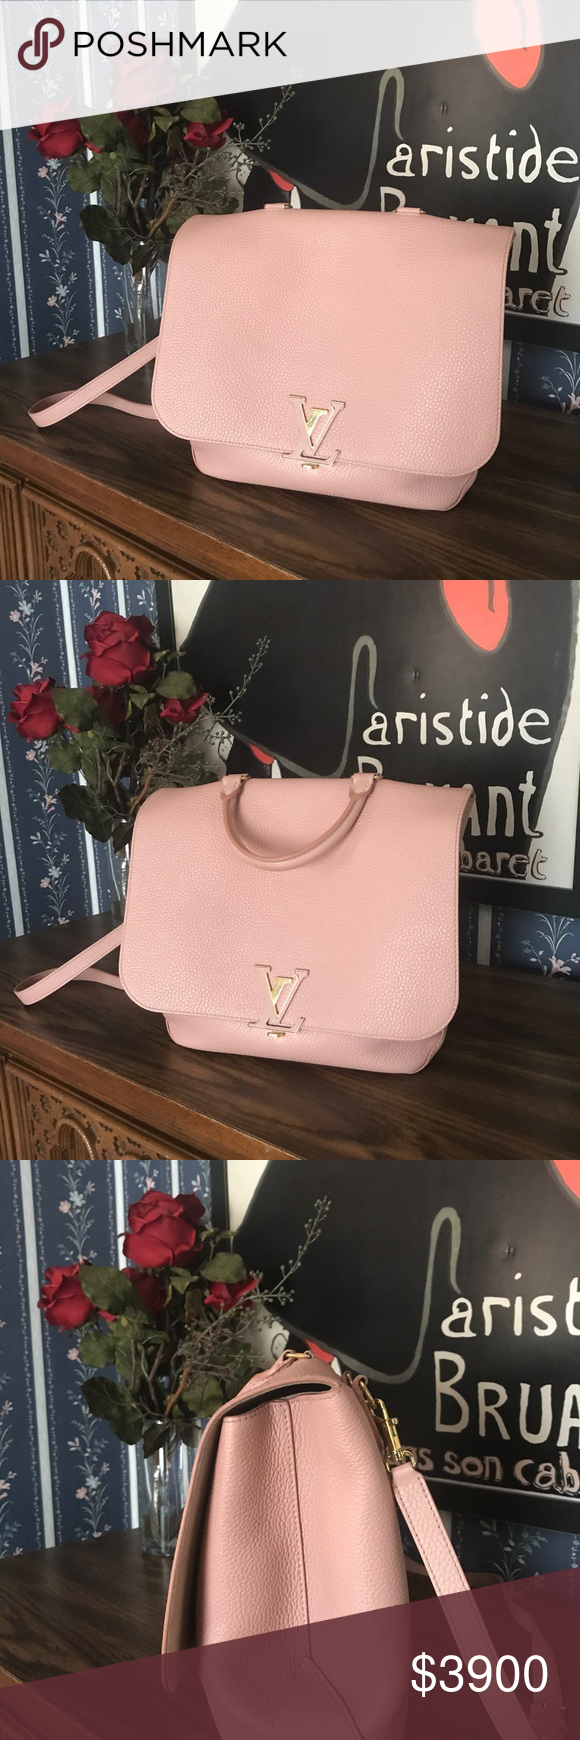 8b7ed7564bd8 Louis Vuitton VOLTA bag. A new design for sophisticates on the go  for women  who appreciate luxury but who also love the sporty allure of a classic ...